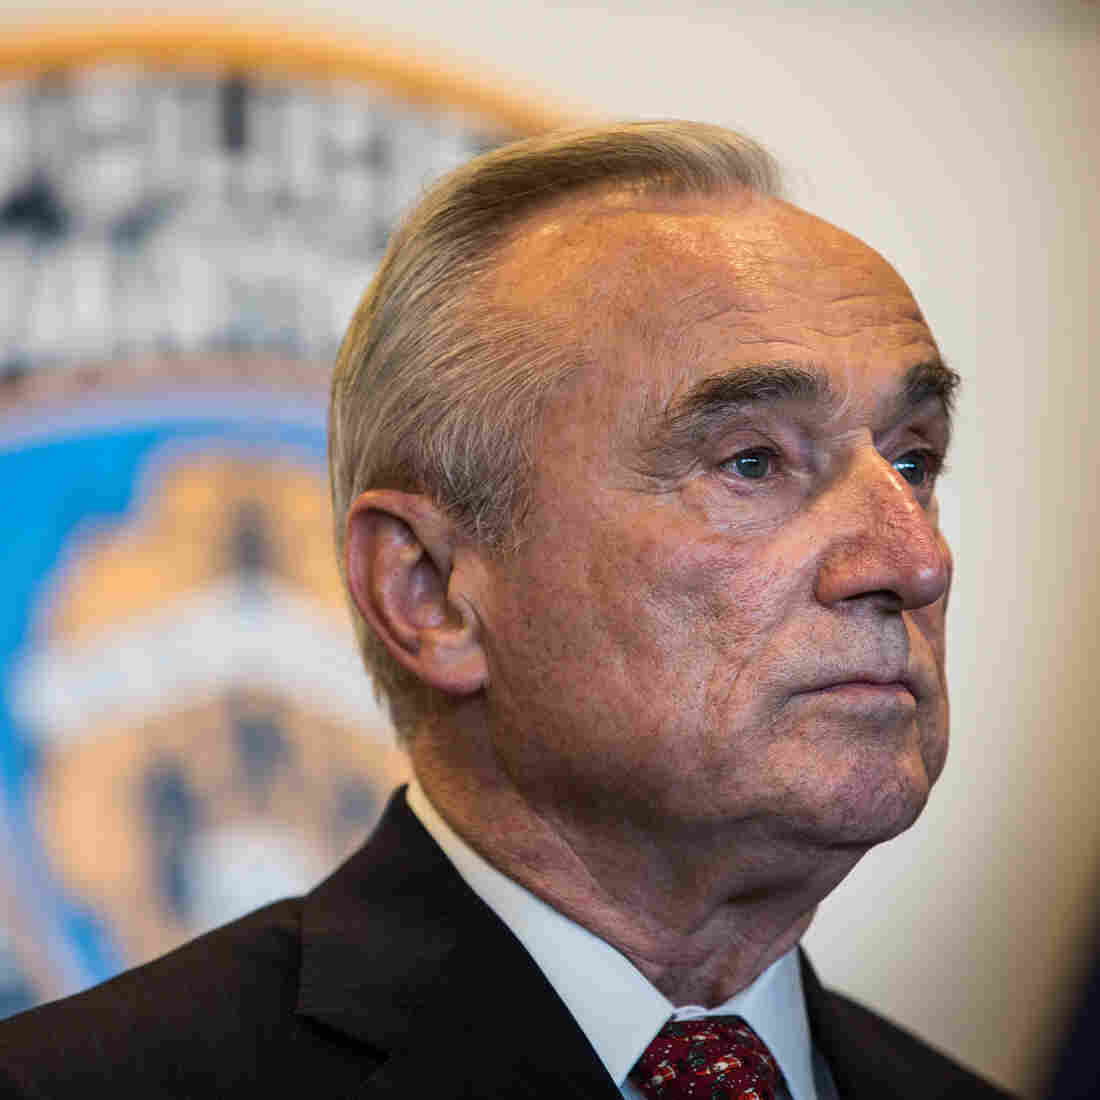 New York Police Department Commissioner William Bratton attends a press conference after witnessing police being retrained under new guidelines at the Police Academy on Dec. 4.